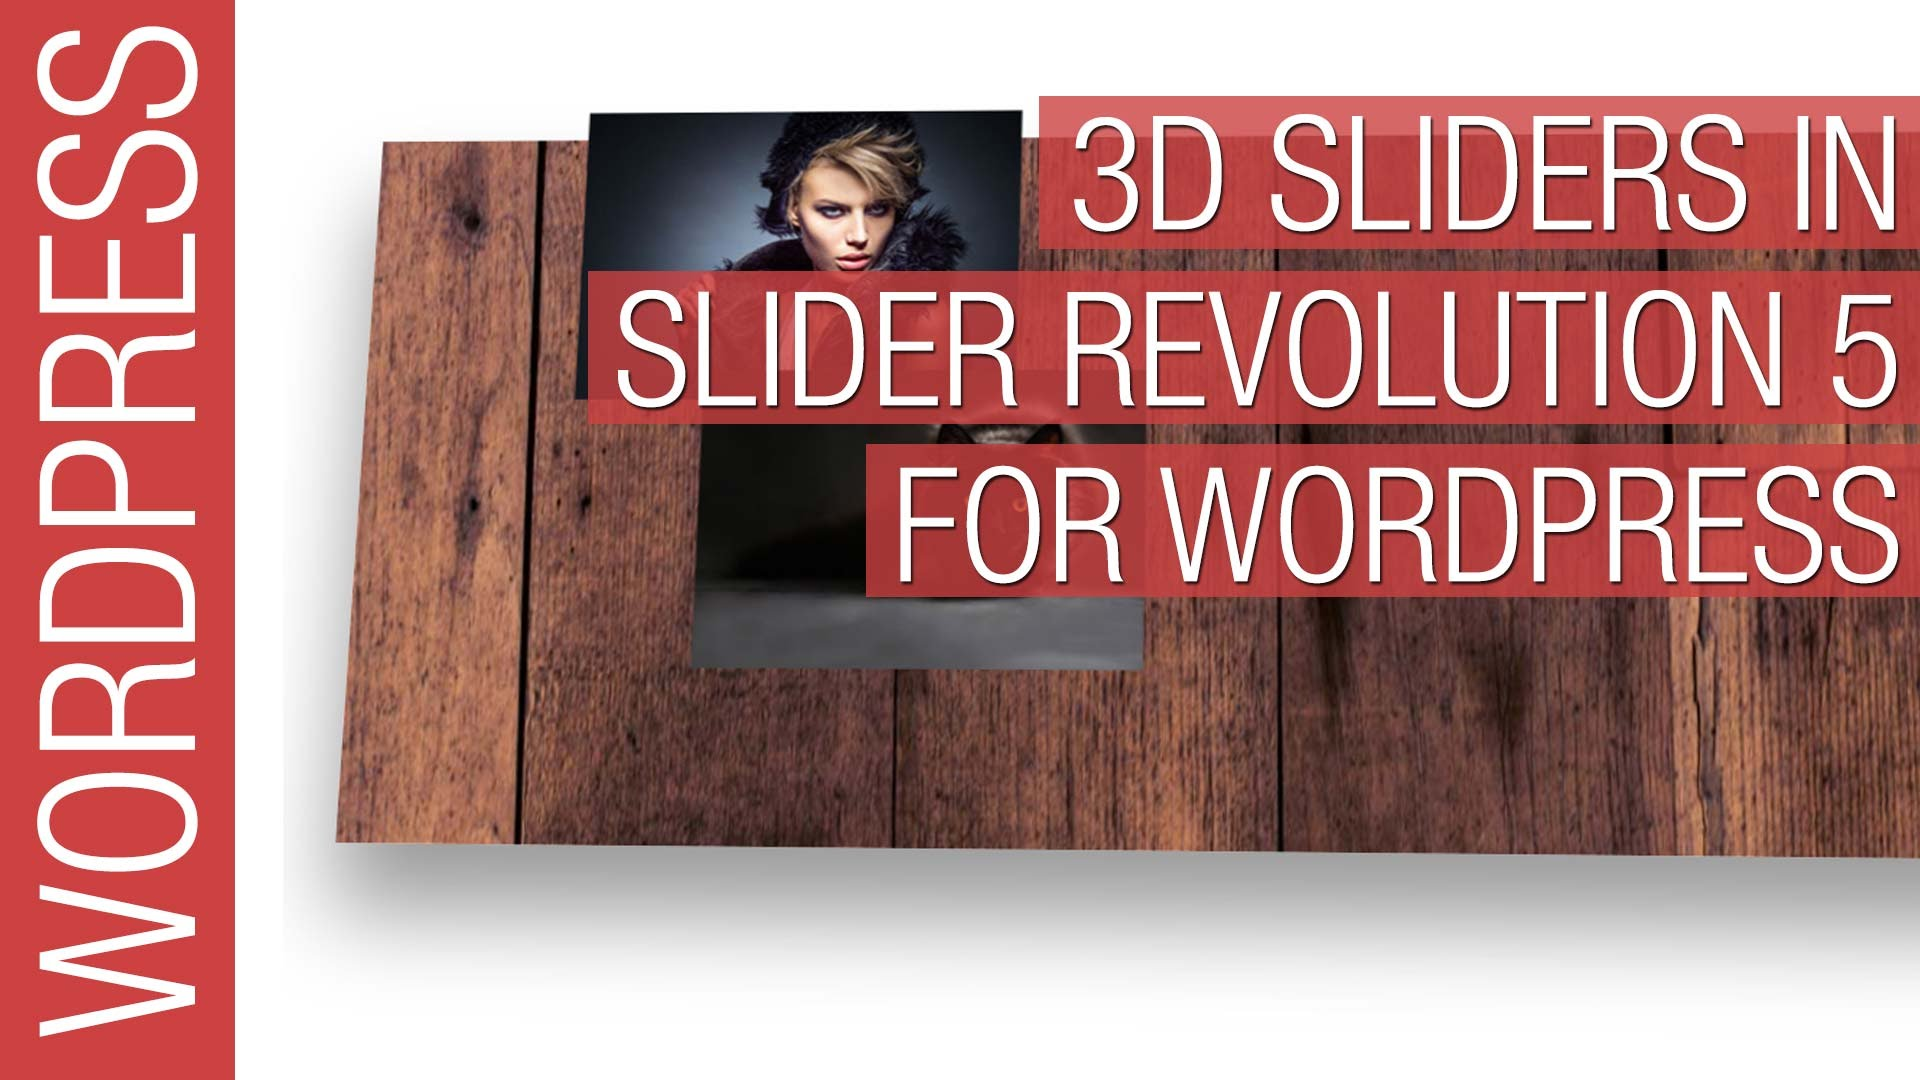 Create 3D Sliders in WordPress Slider Revolution 5 for Beginners 2016